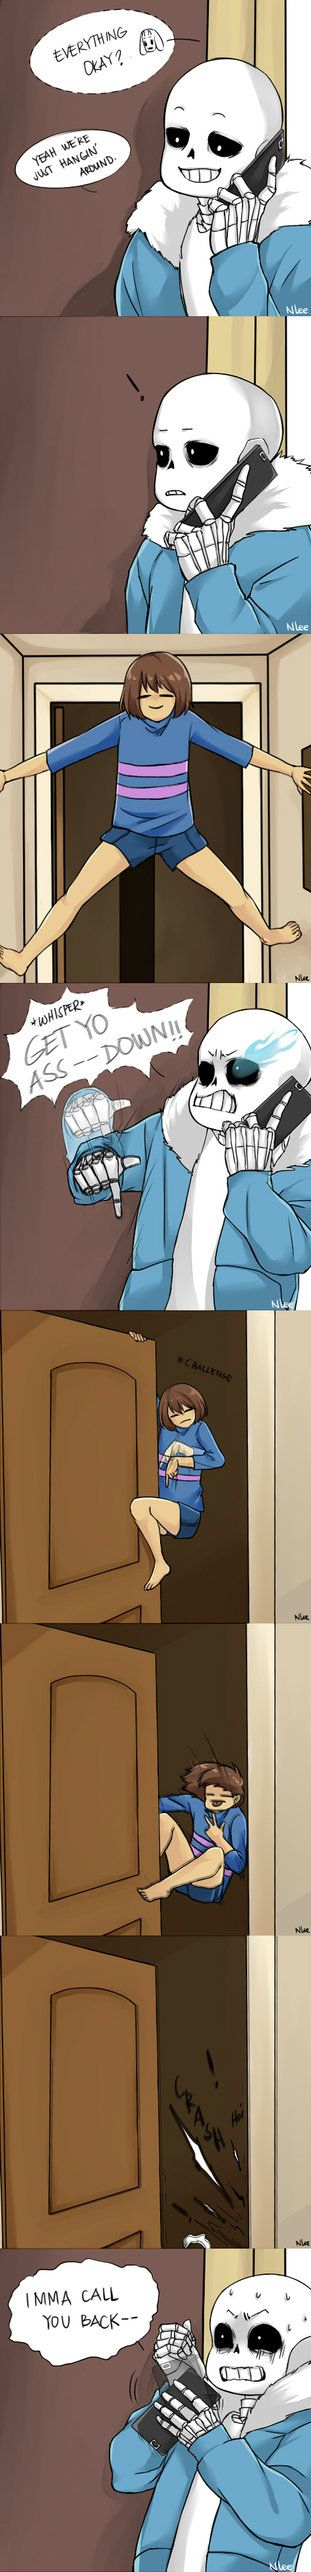 Babysitter!Sans: I'M ON PHONE! by NonLee.deviantart.com on @DeviantArt